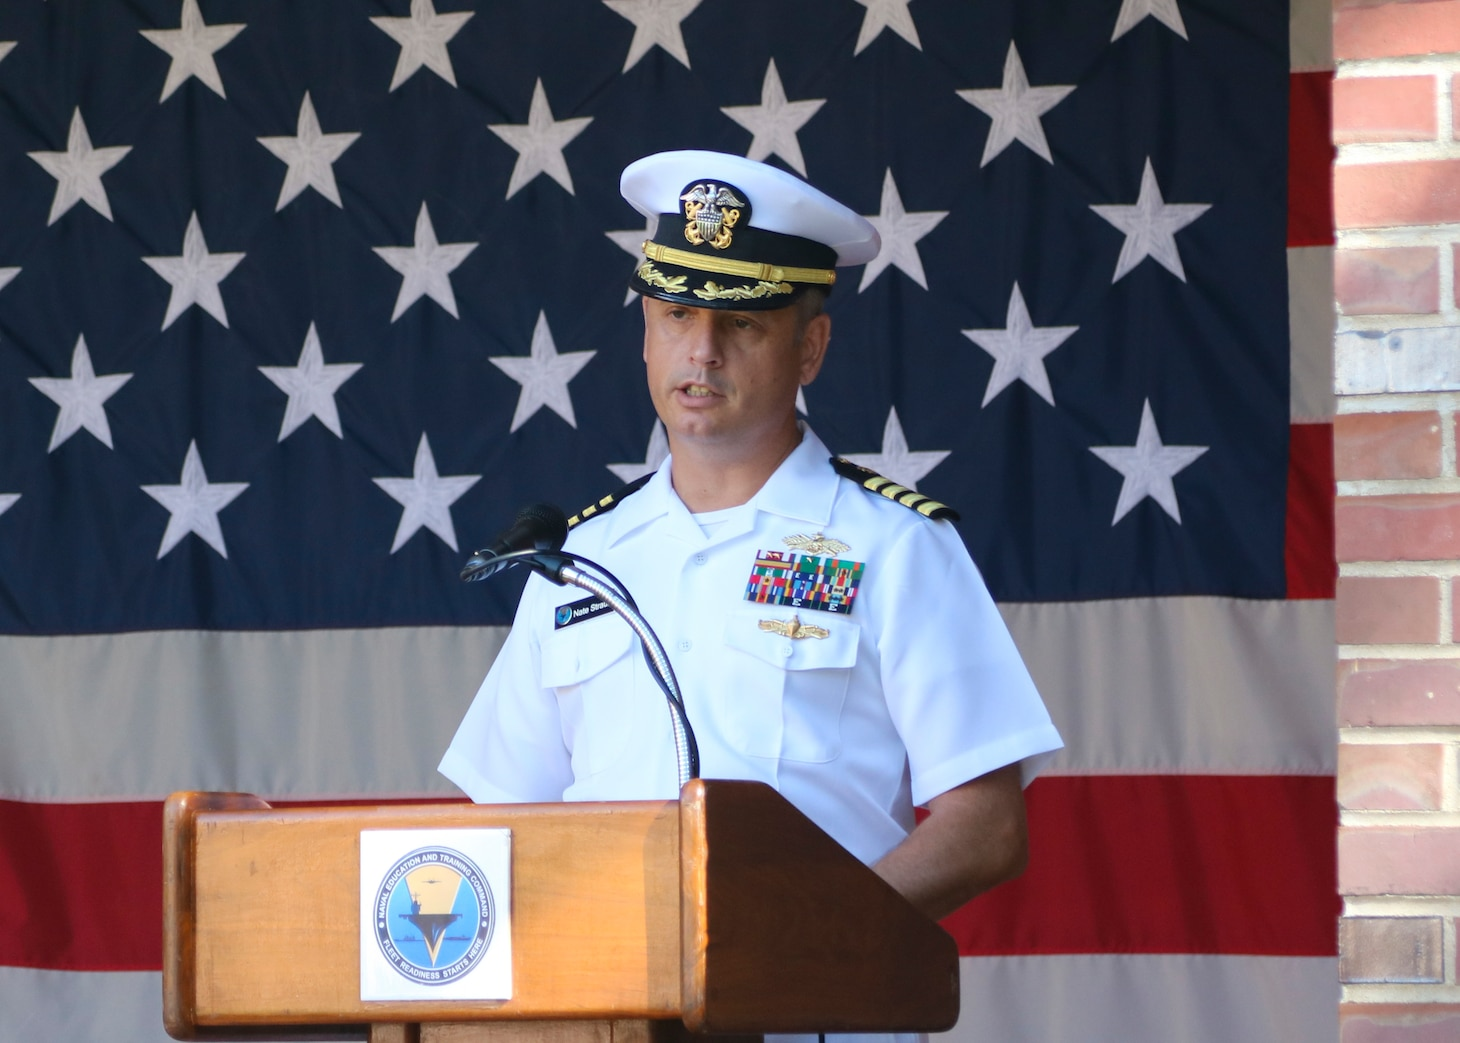 Capt. Nate Straub, director of facilities and logistics, at Naval Education and Training Command (NETC), speaks during a 9/11 memorial ceremony.